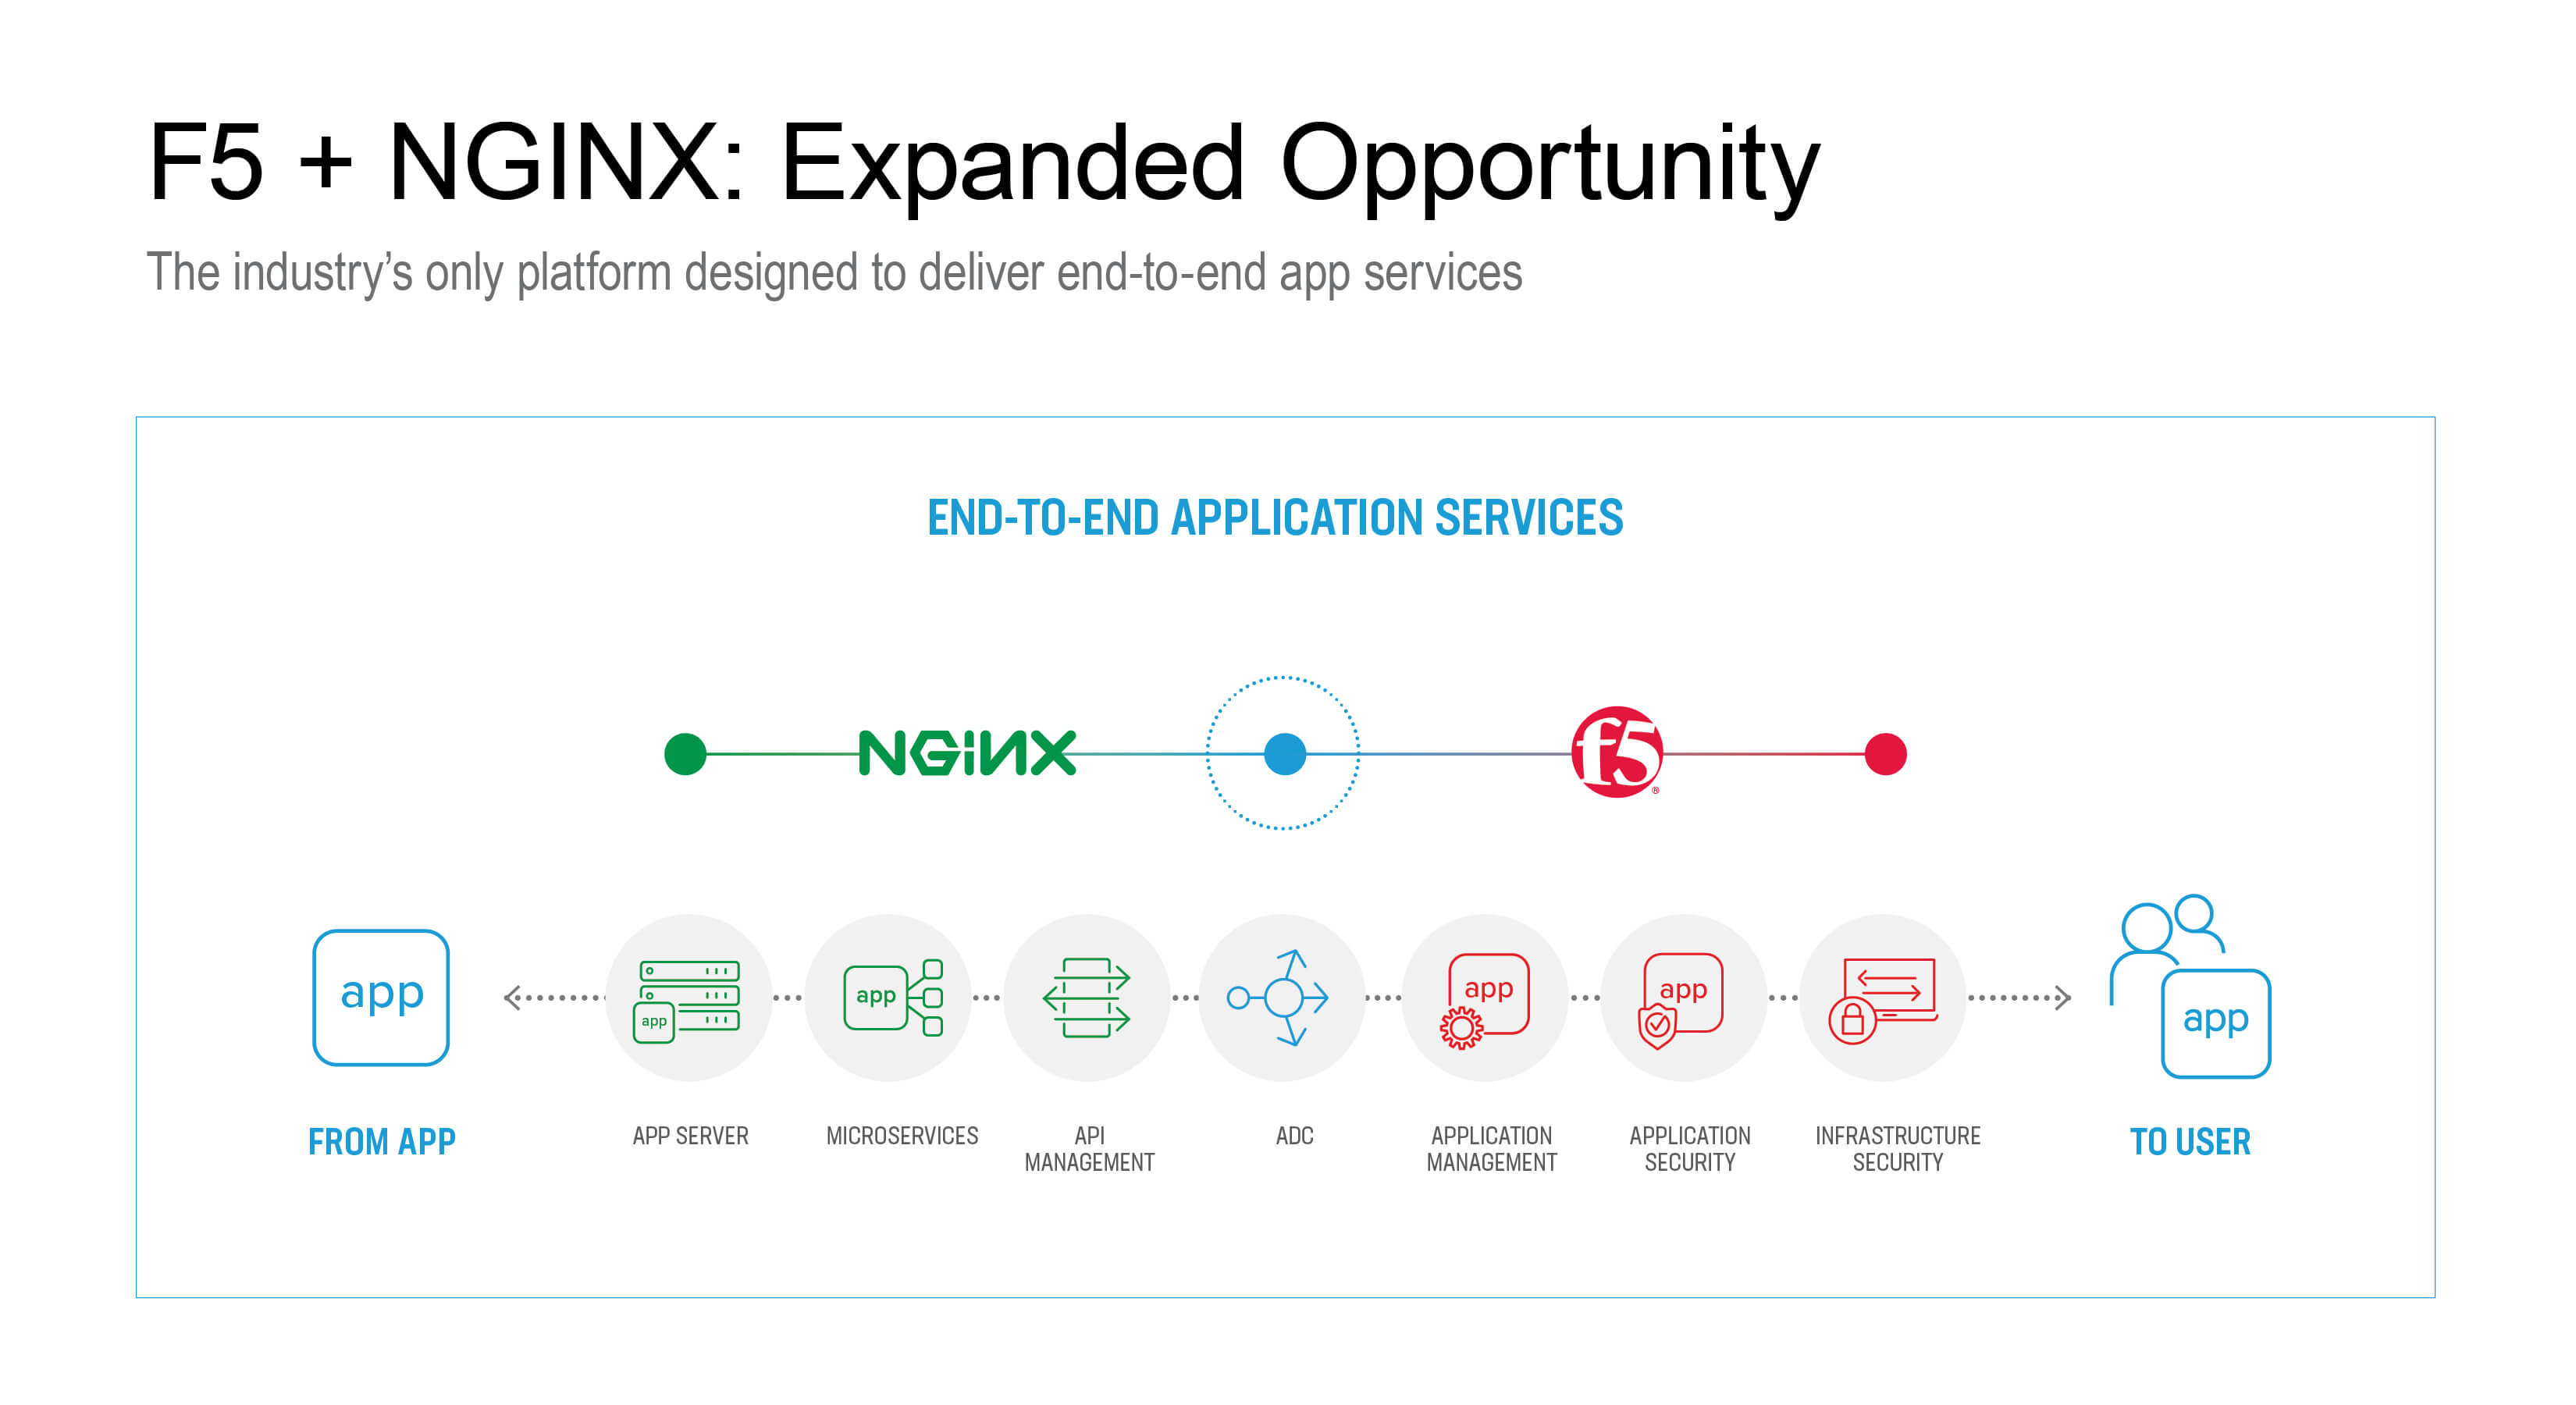 F5 to Acquire NGINX